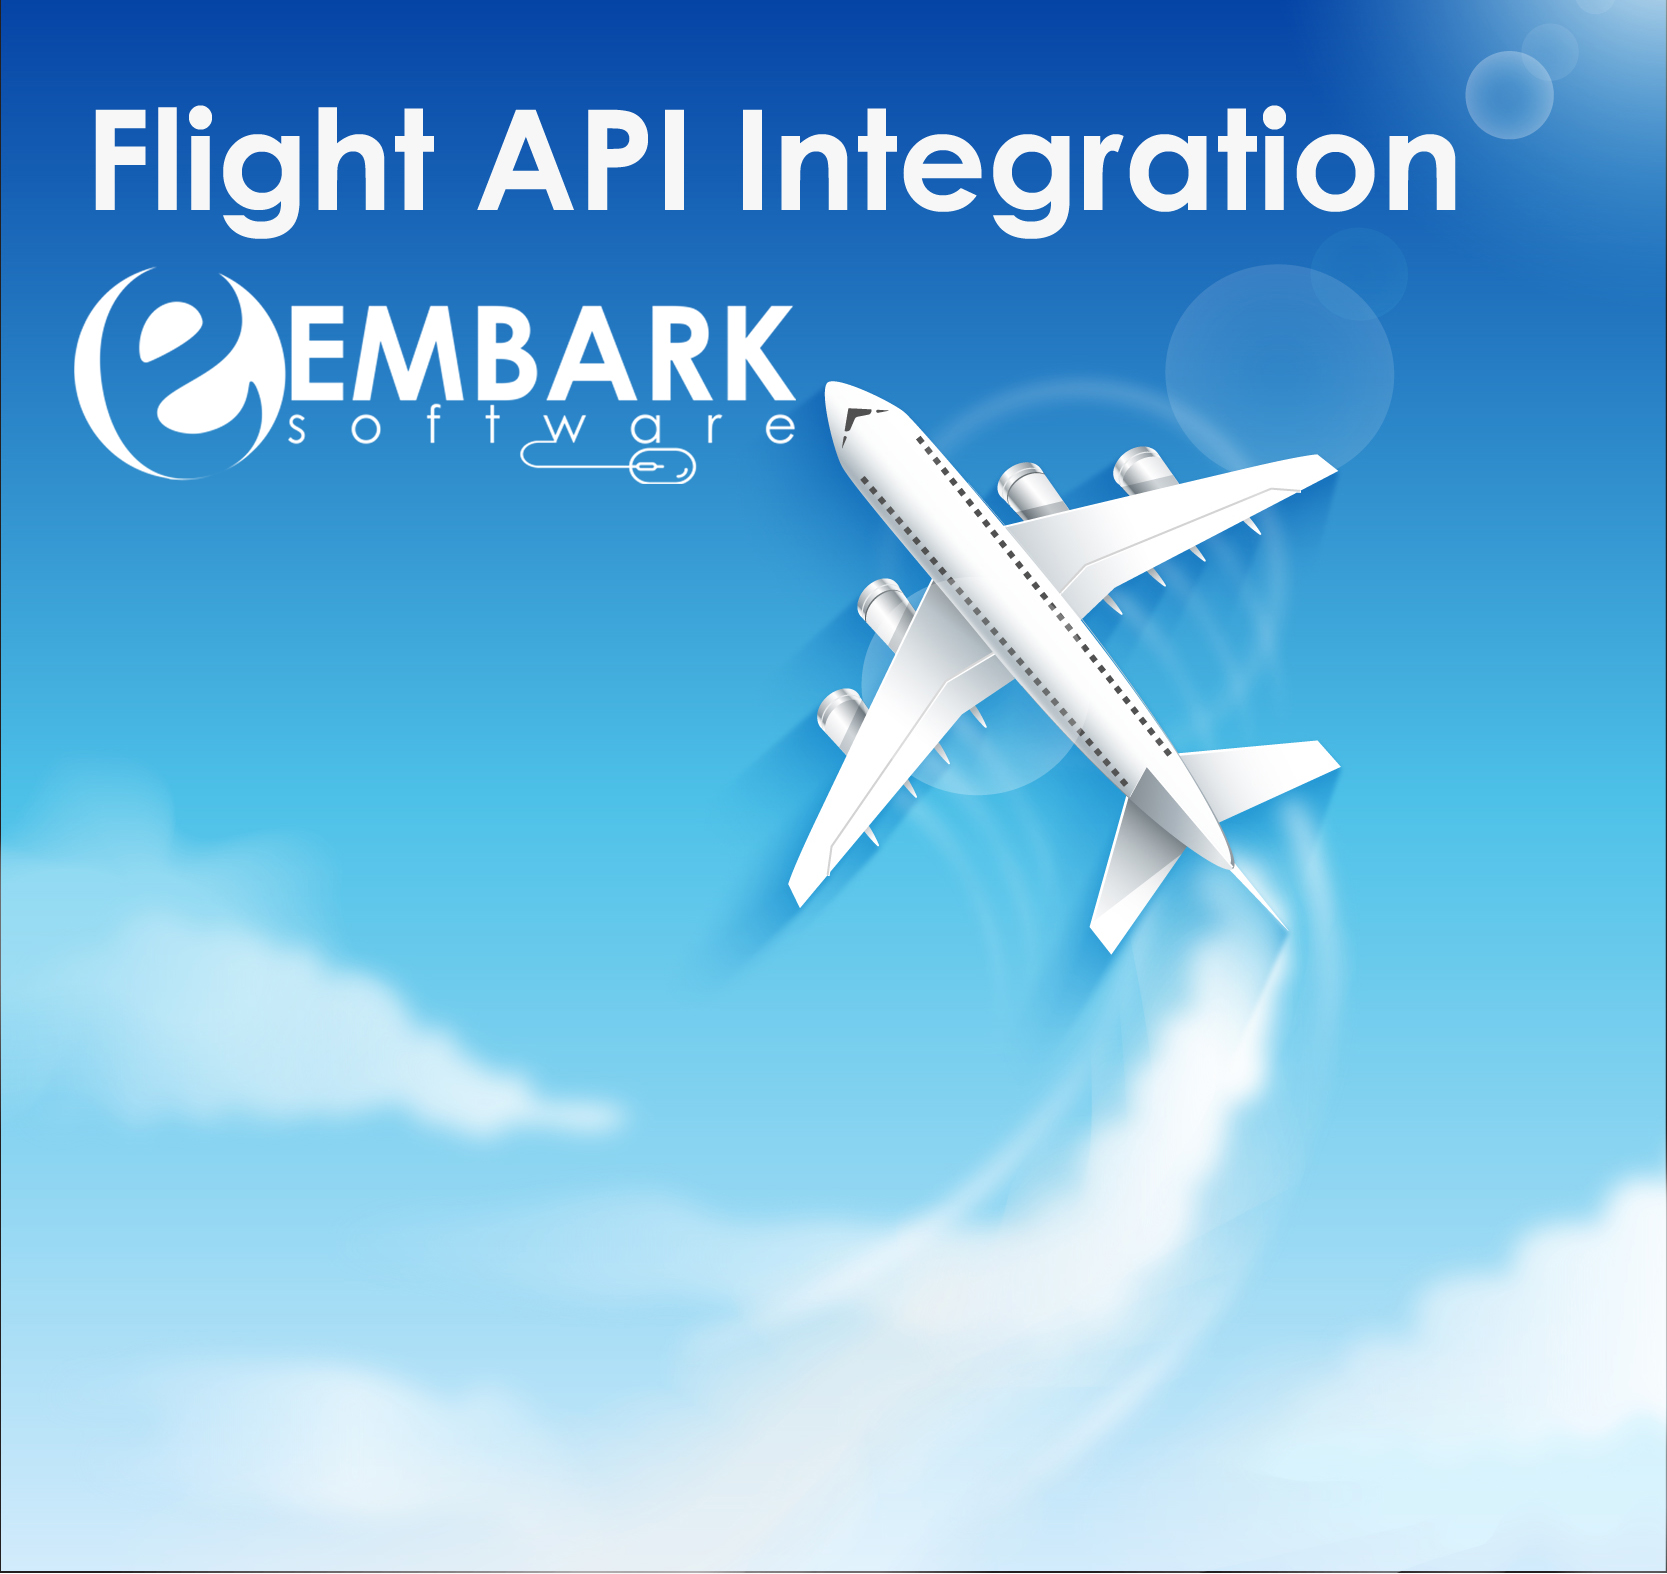 Several Flight API Integration taking care of the entire travel industry